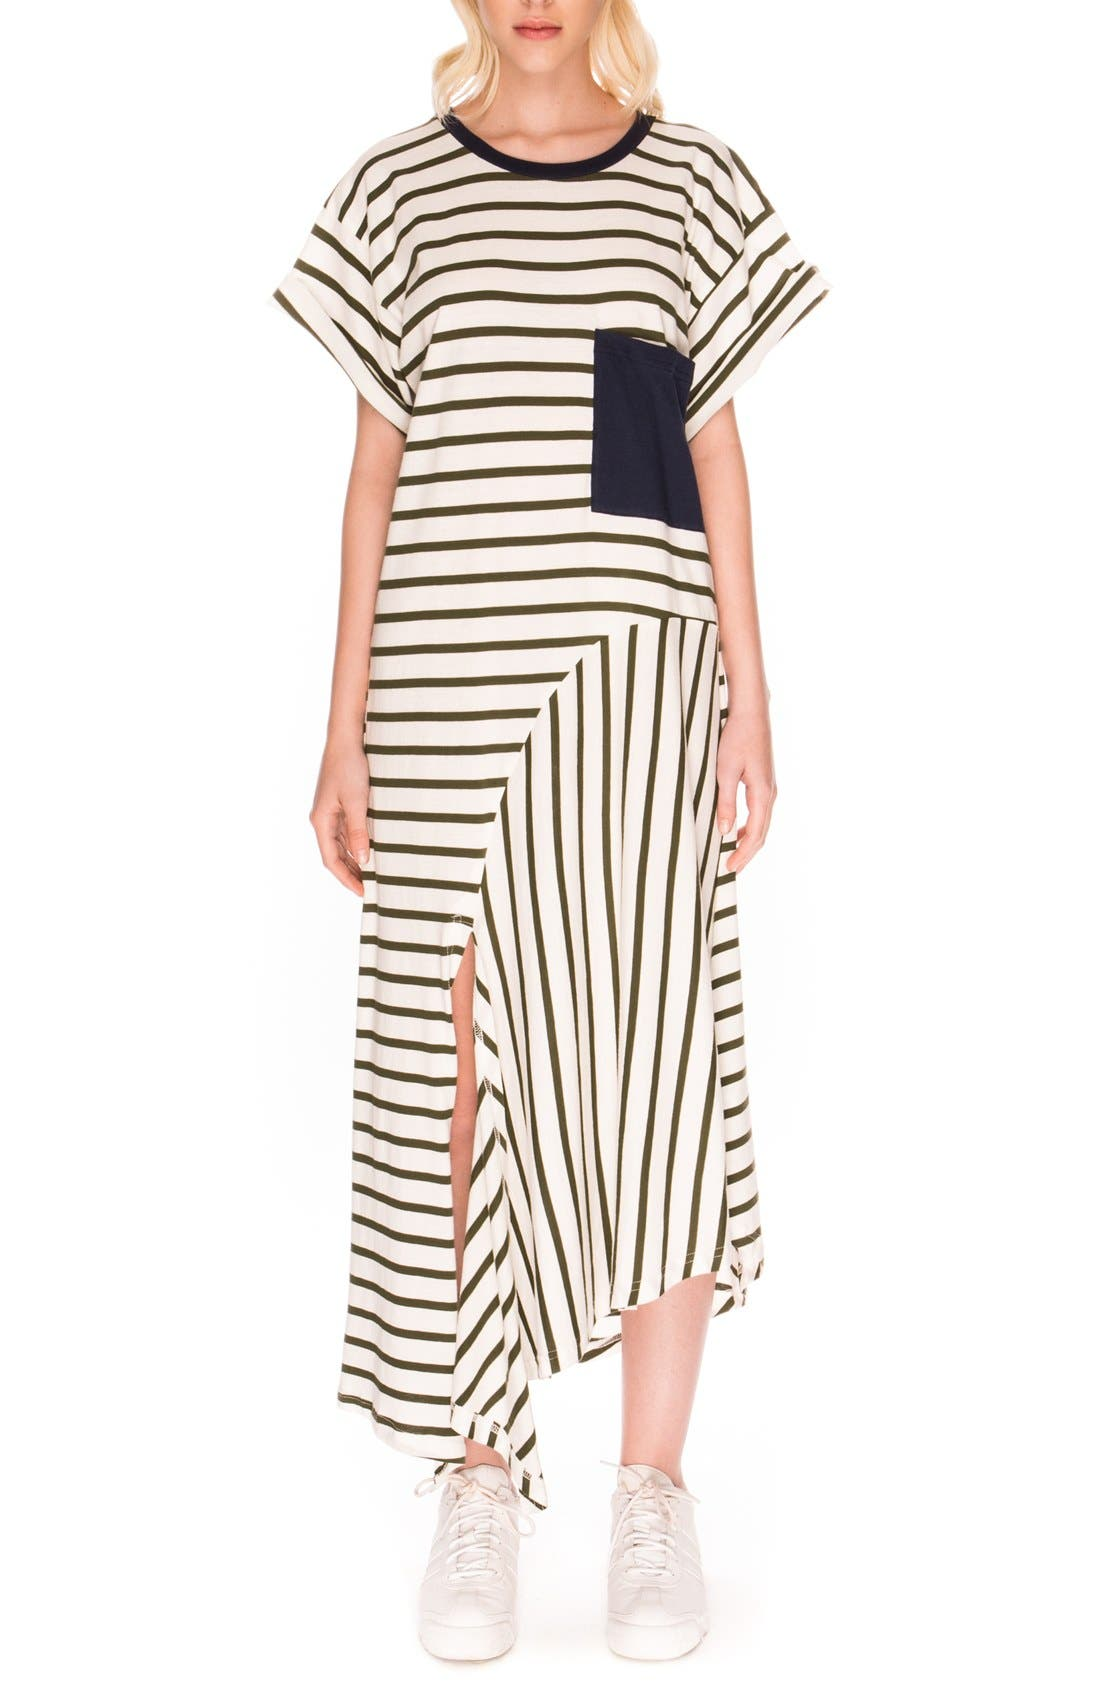 Alternate Image 1 Selected - The Fifth Label 'On Your Mark' Stripe T-Shirt Dress